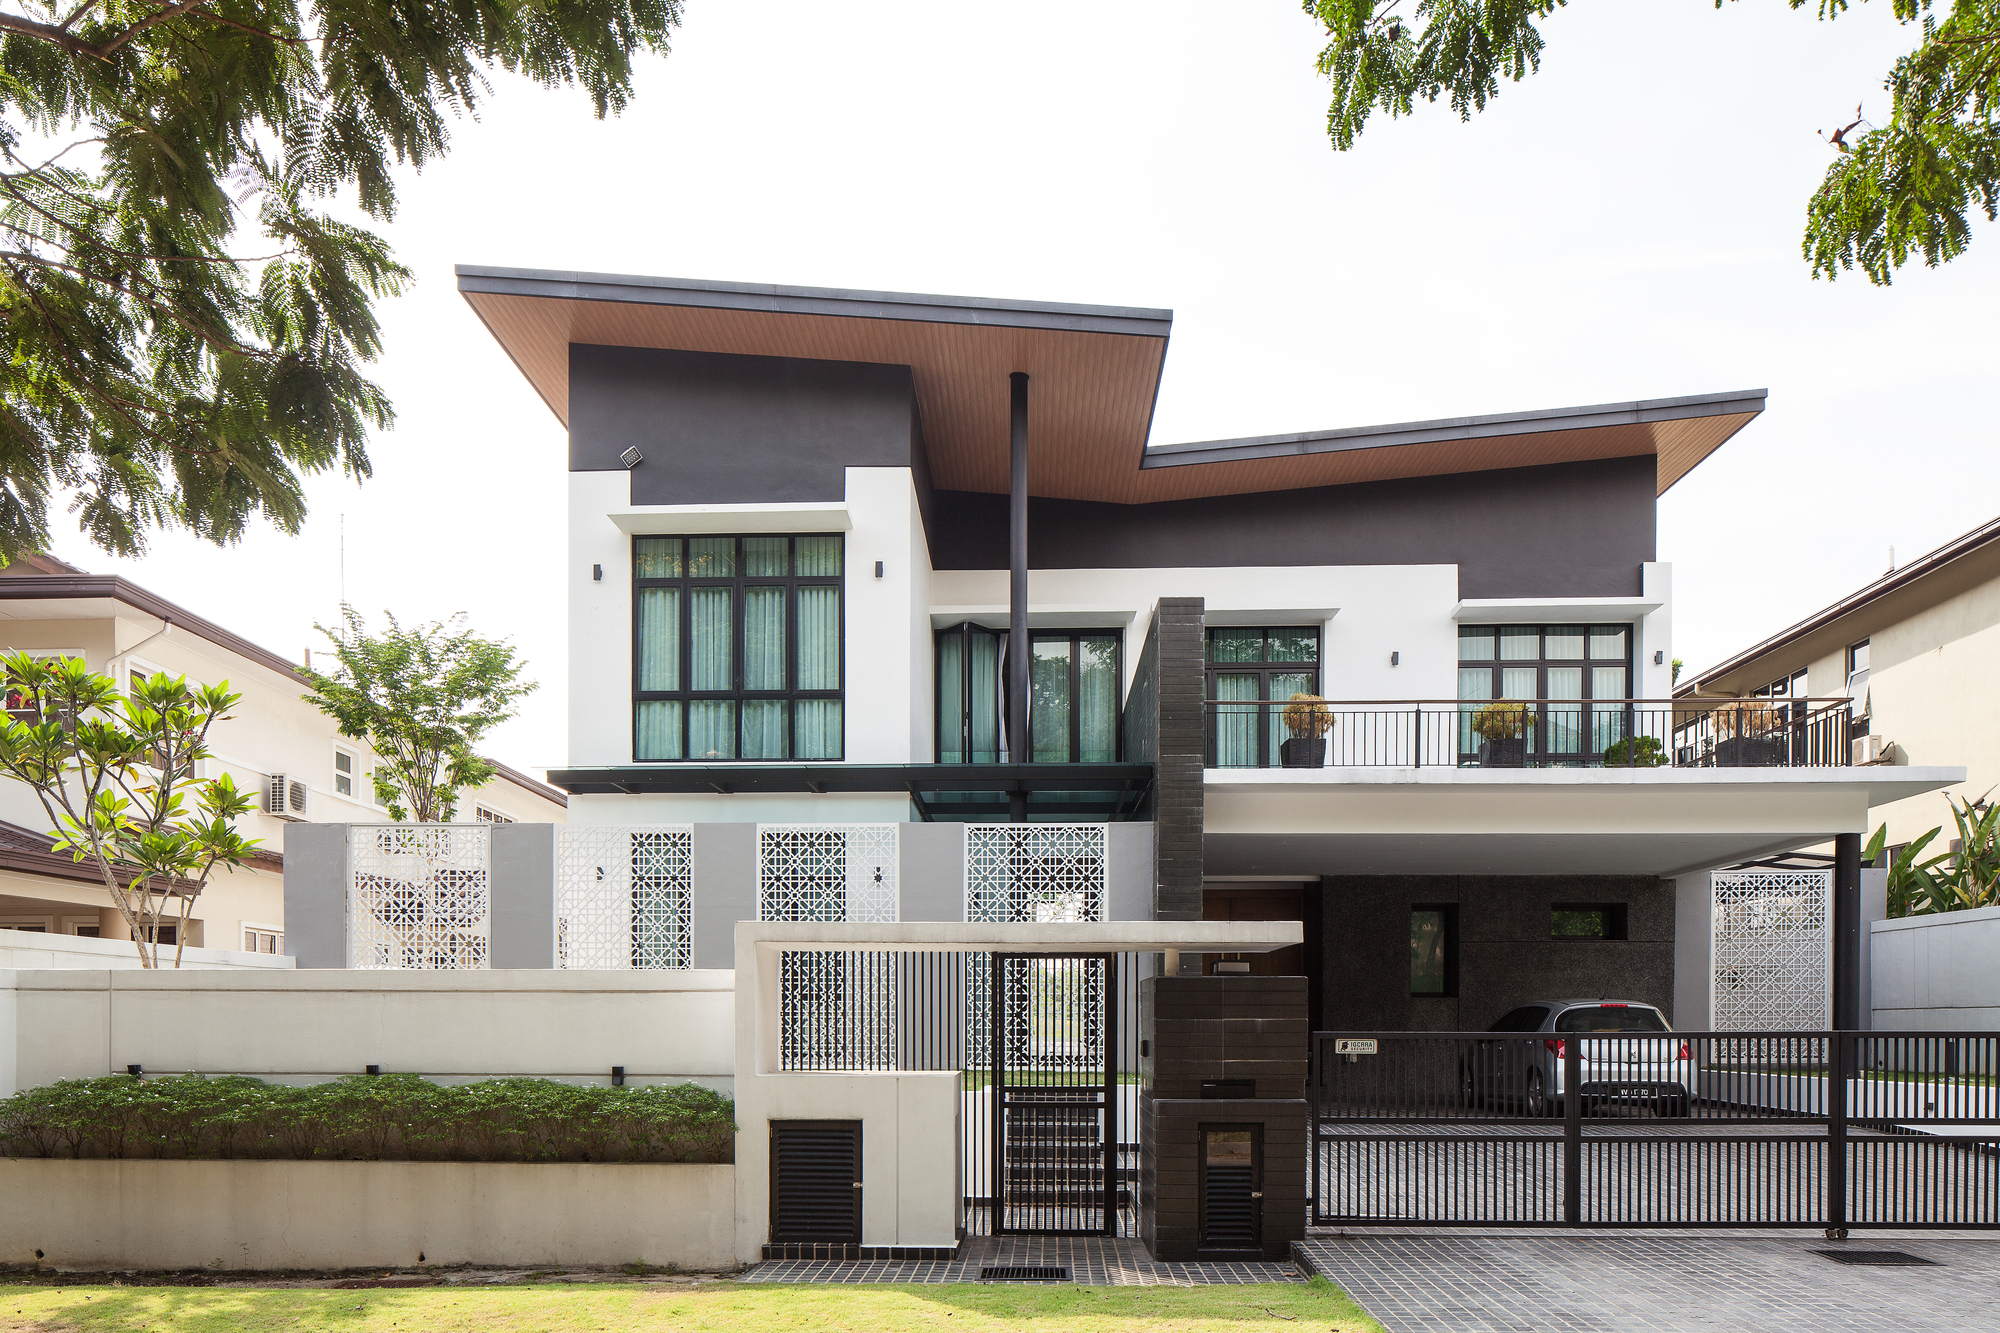 Impian Residence / HBOA (HB Ong Architect)